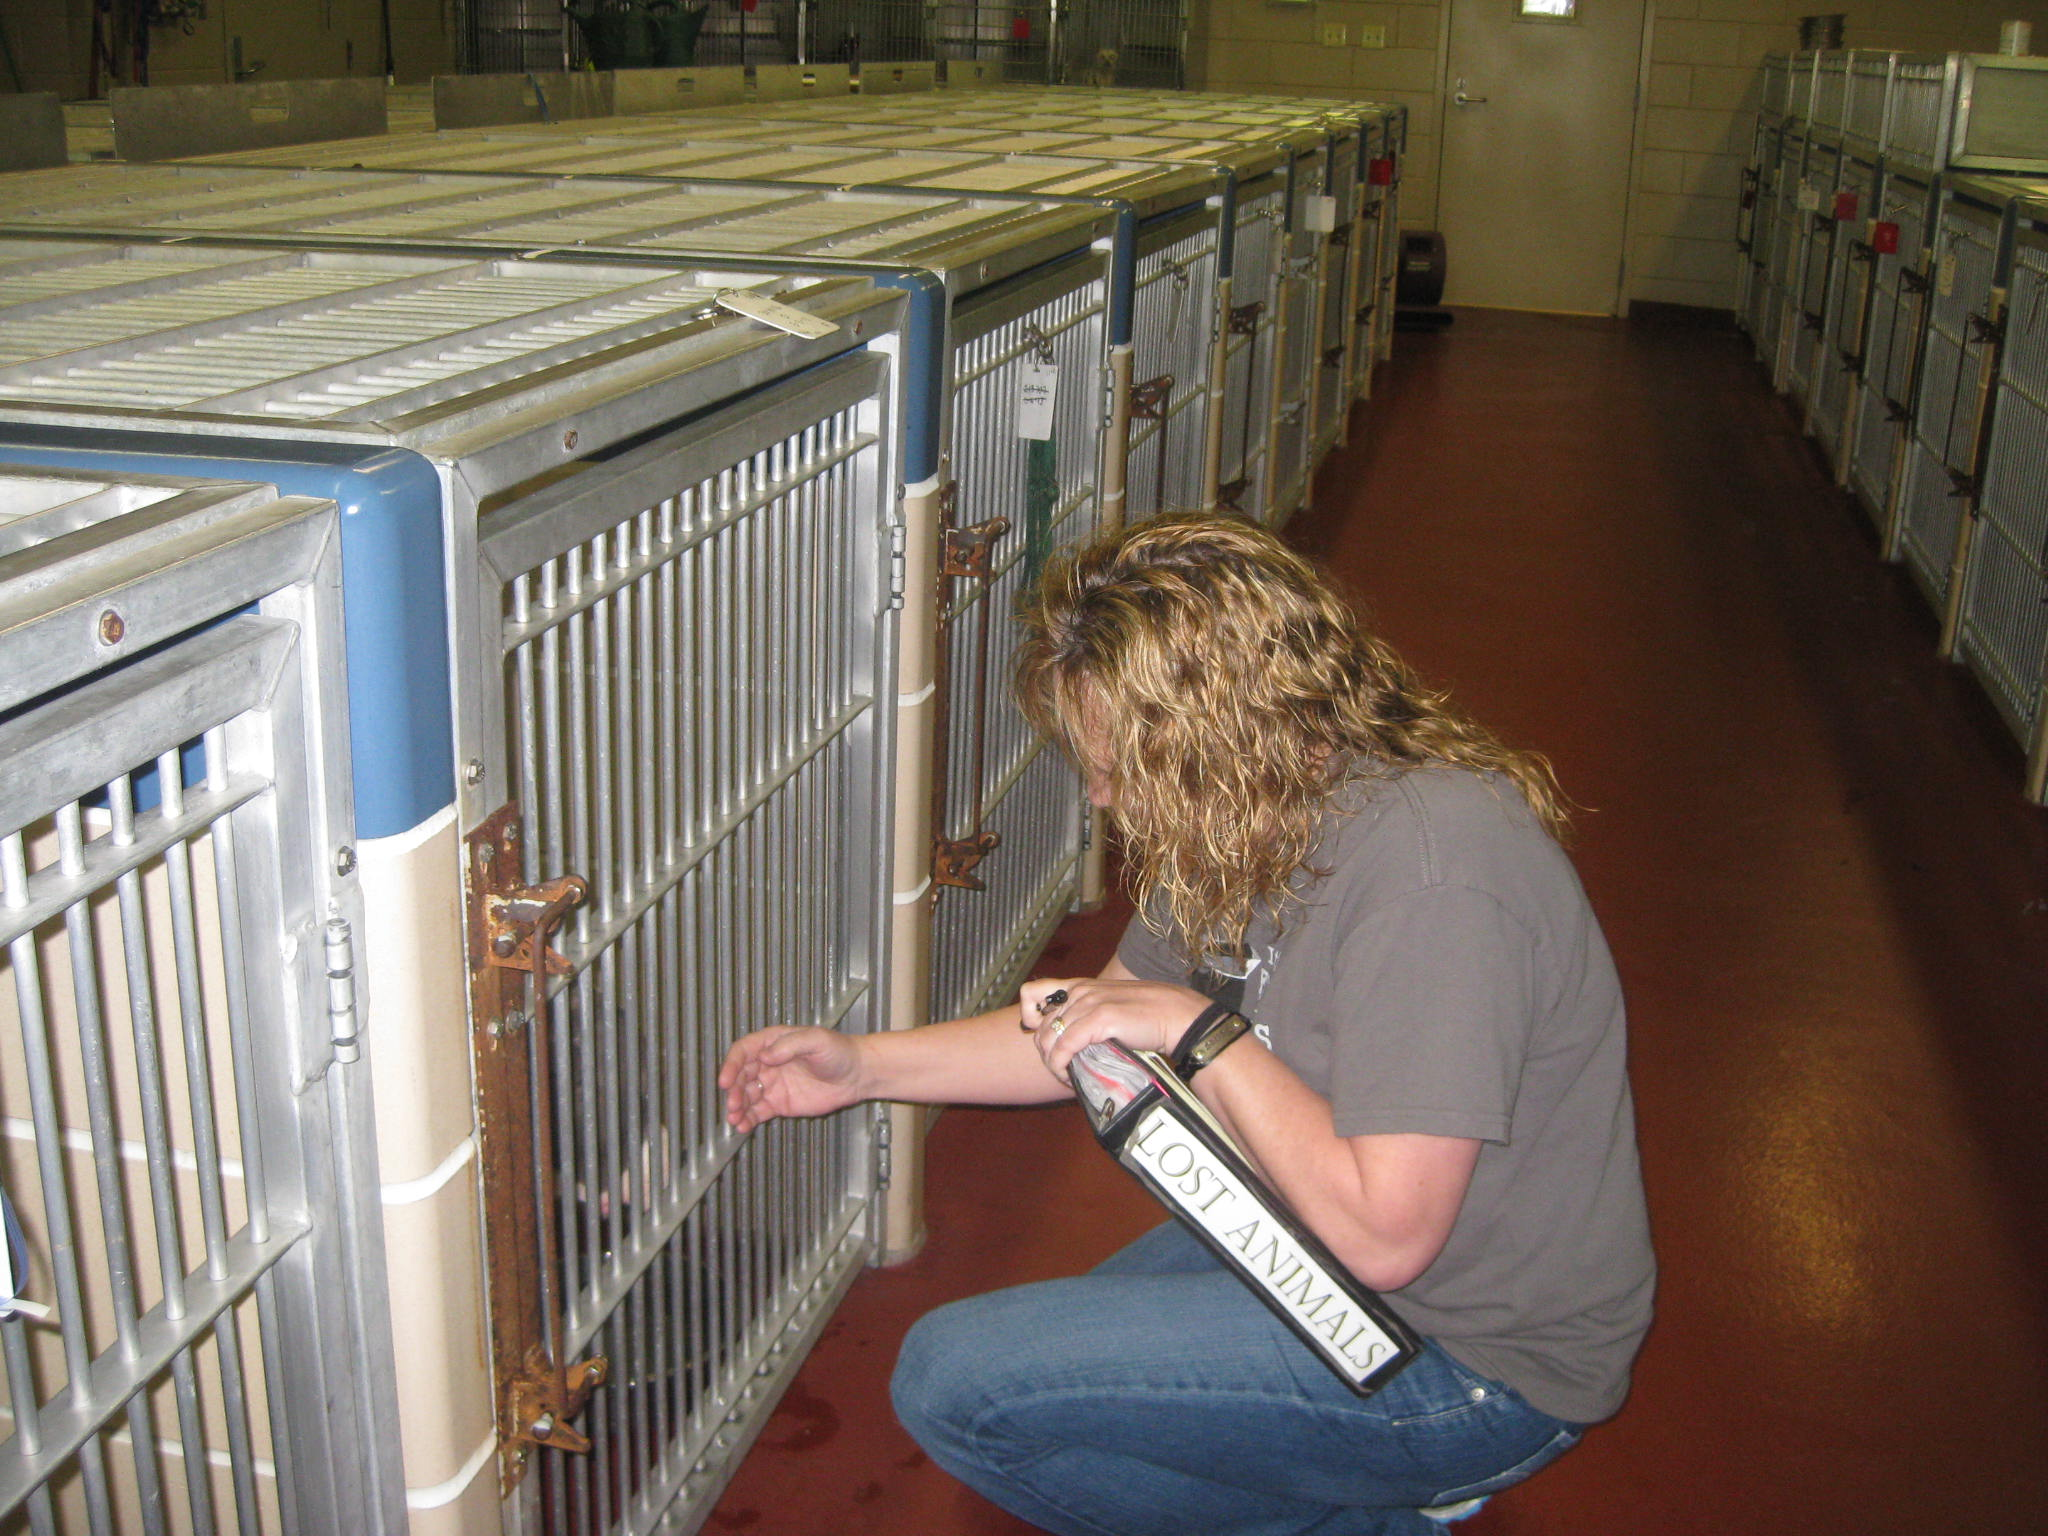 Patty, an Animal Control Officer at Winnebago County Animal Services in Rockford , Illinois checks the kennels for dogs matching the descriptions in the Lost Dog reports.